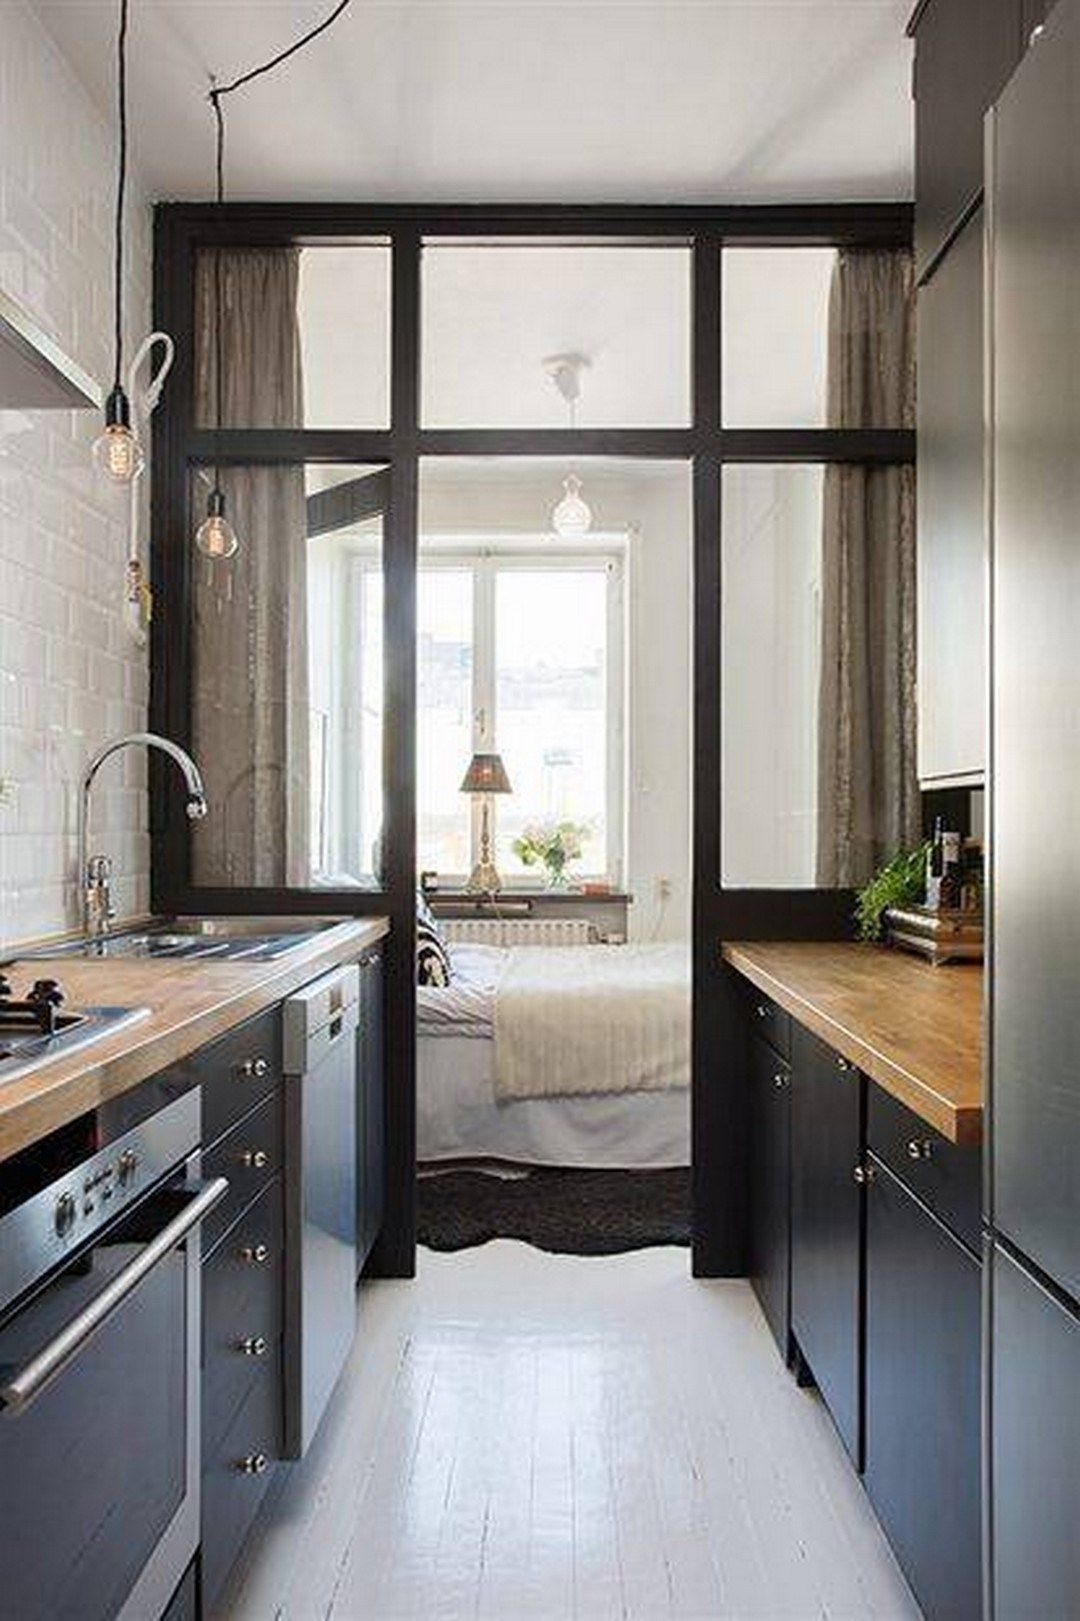 SMALL KITCHEN SPACE IDEAS   Home   Pinterest   Tiny houses, Spaces ...